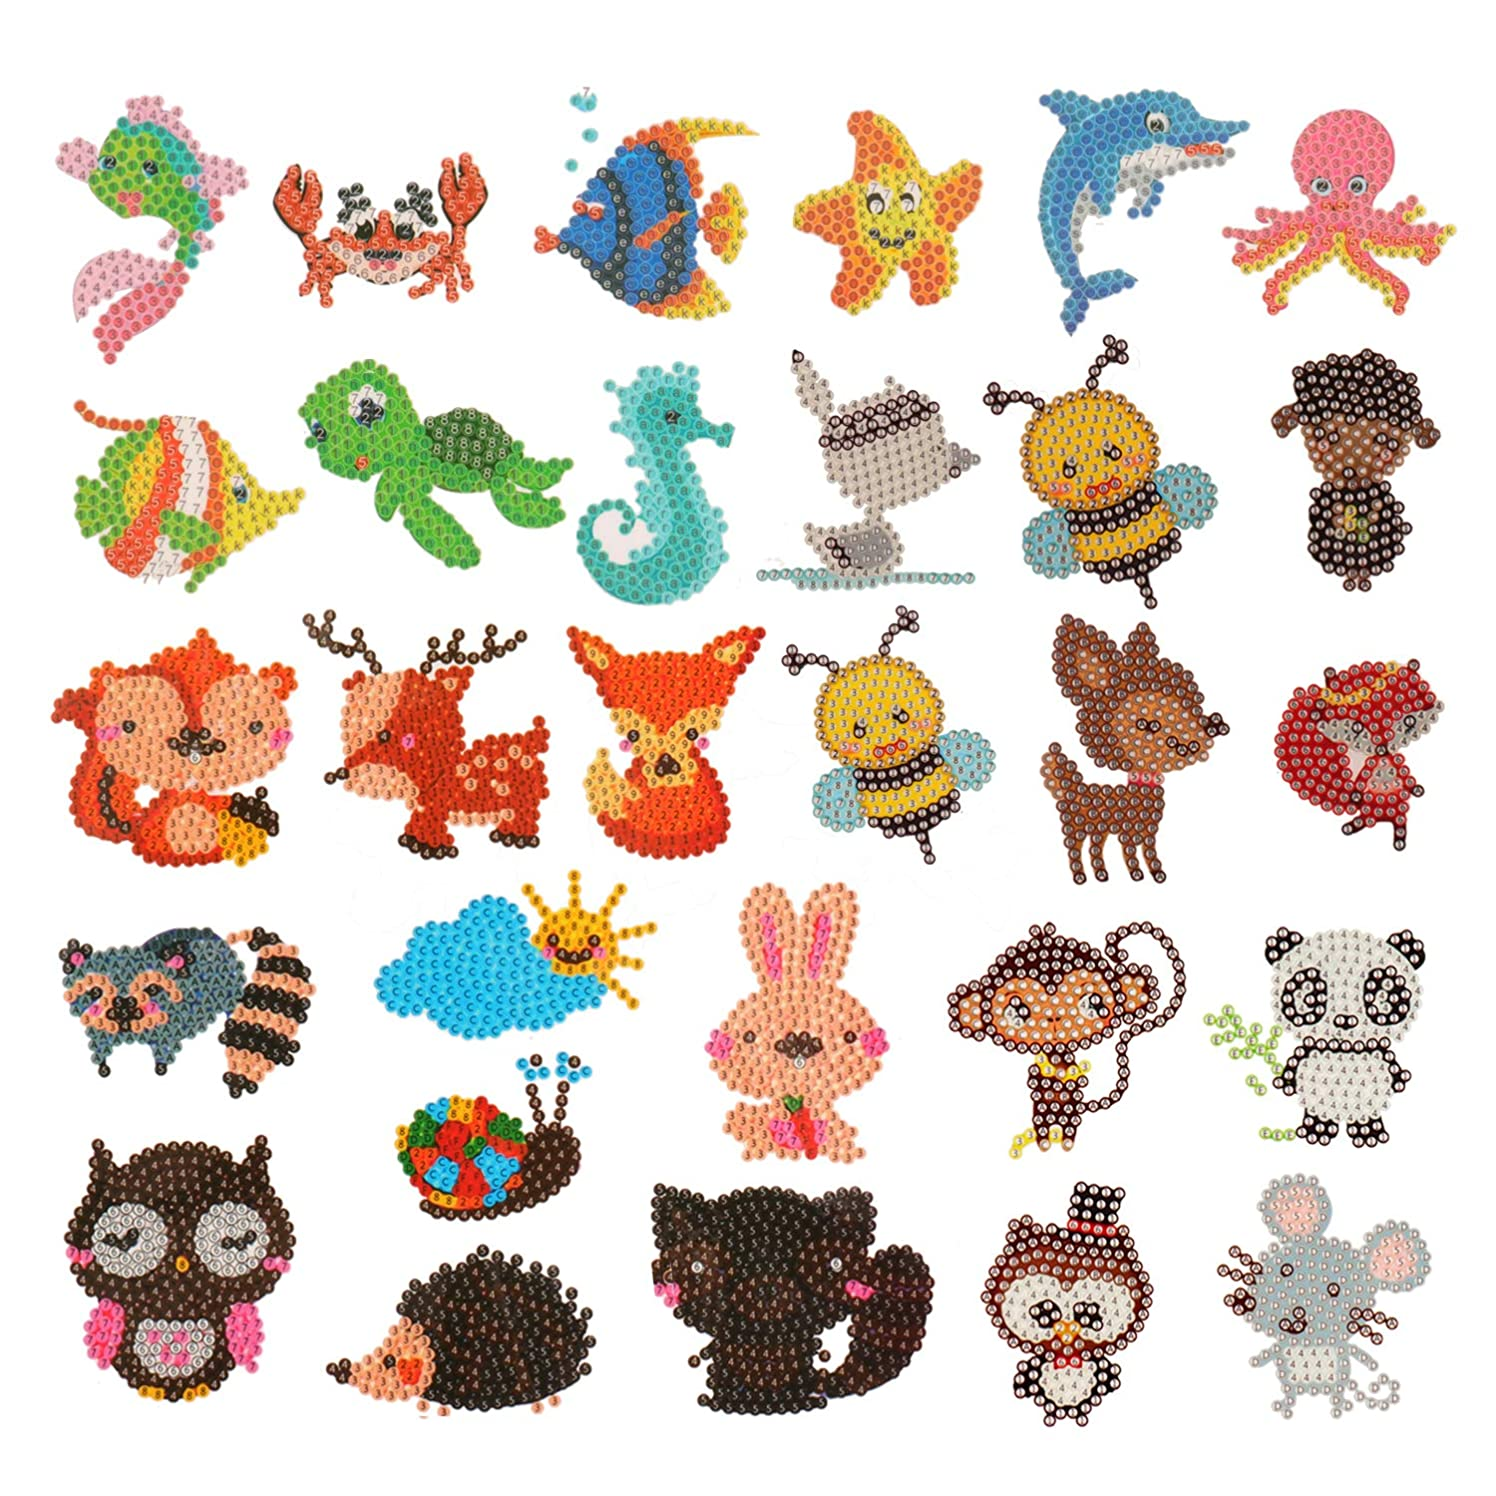 HaiMay 29 Pieces 5D DIY Diamond Painting Kits Animal Stickers with Corresponding Diamonds for Kids and Adult Beginners, Stick Paint with Diamonds by Numbers Easy to DIY, Cute Animals, Sea World